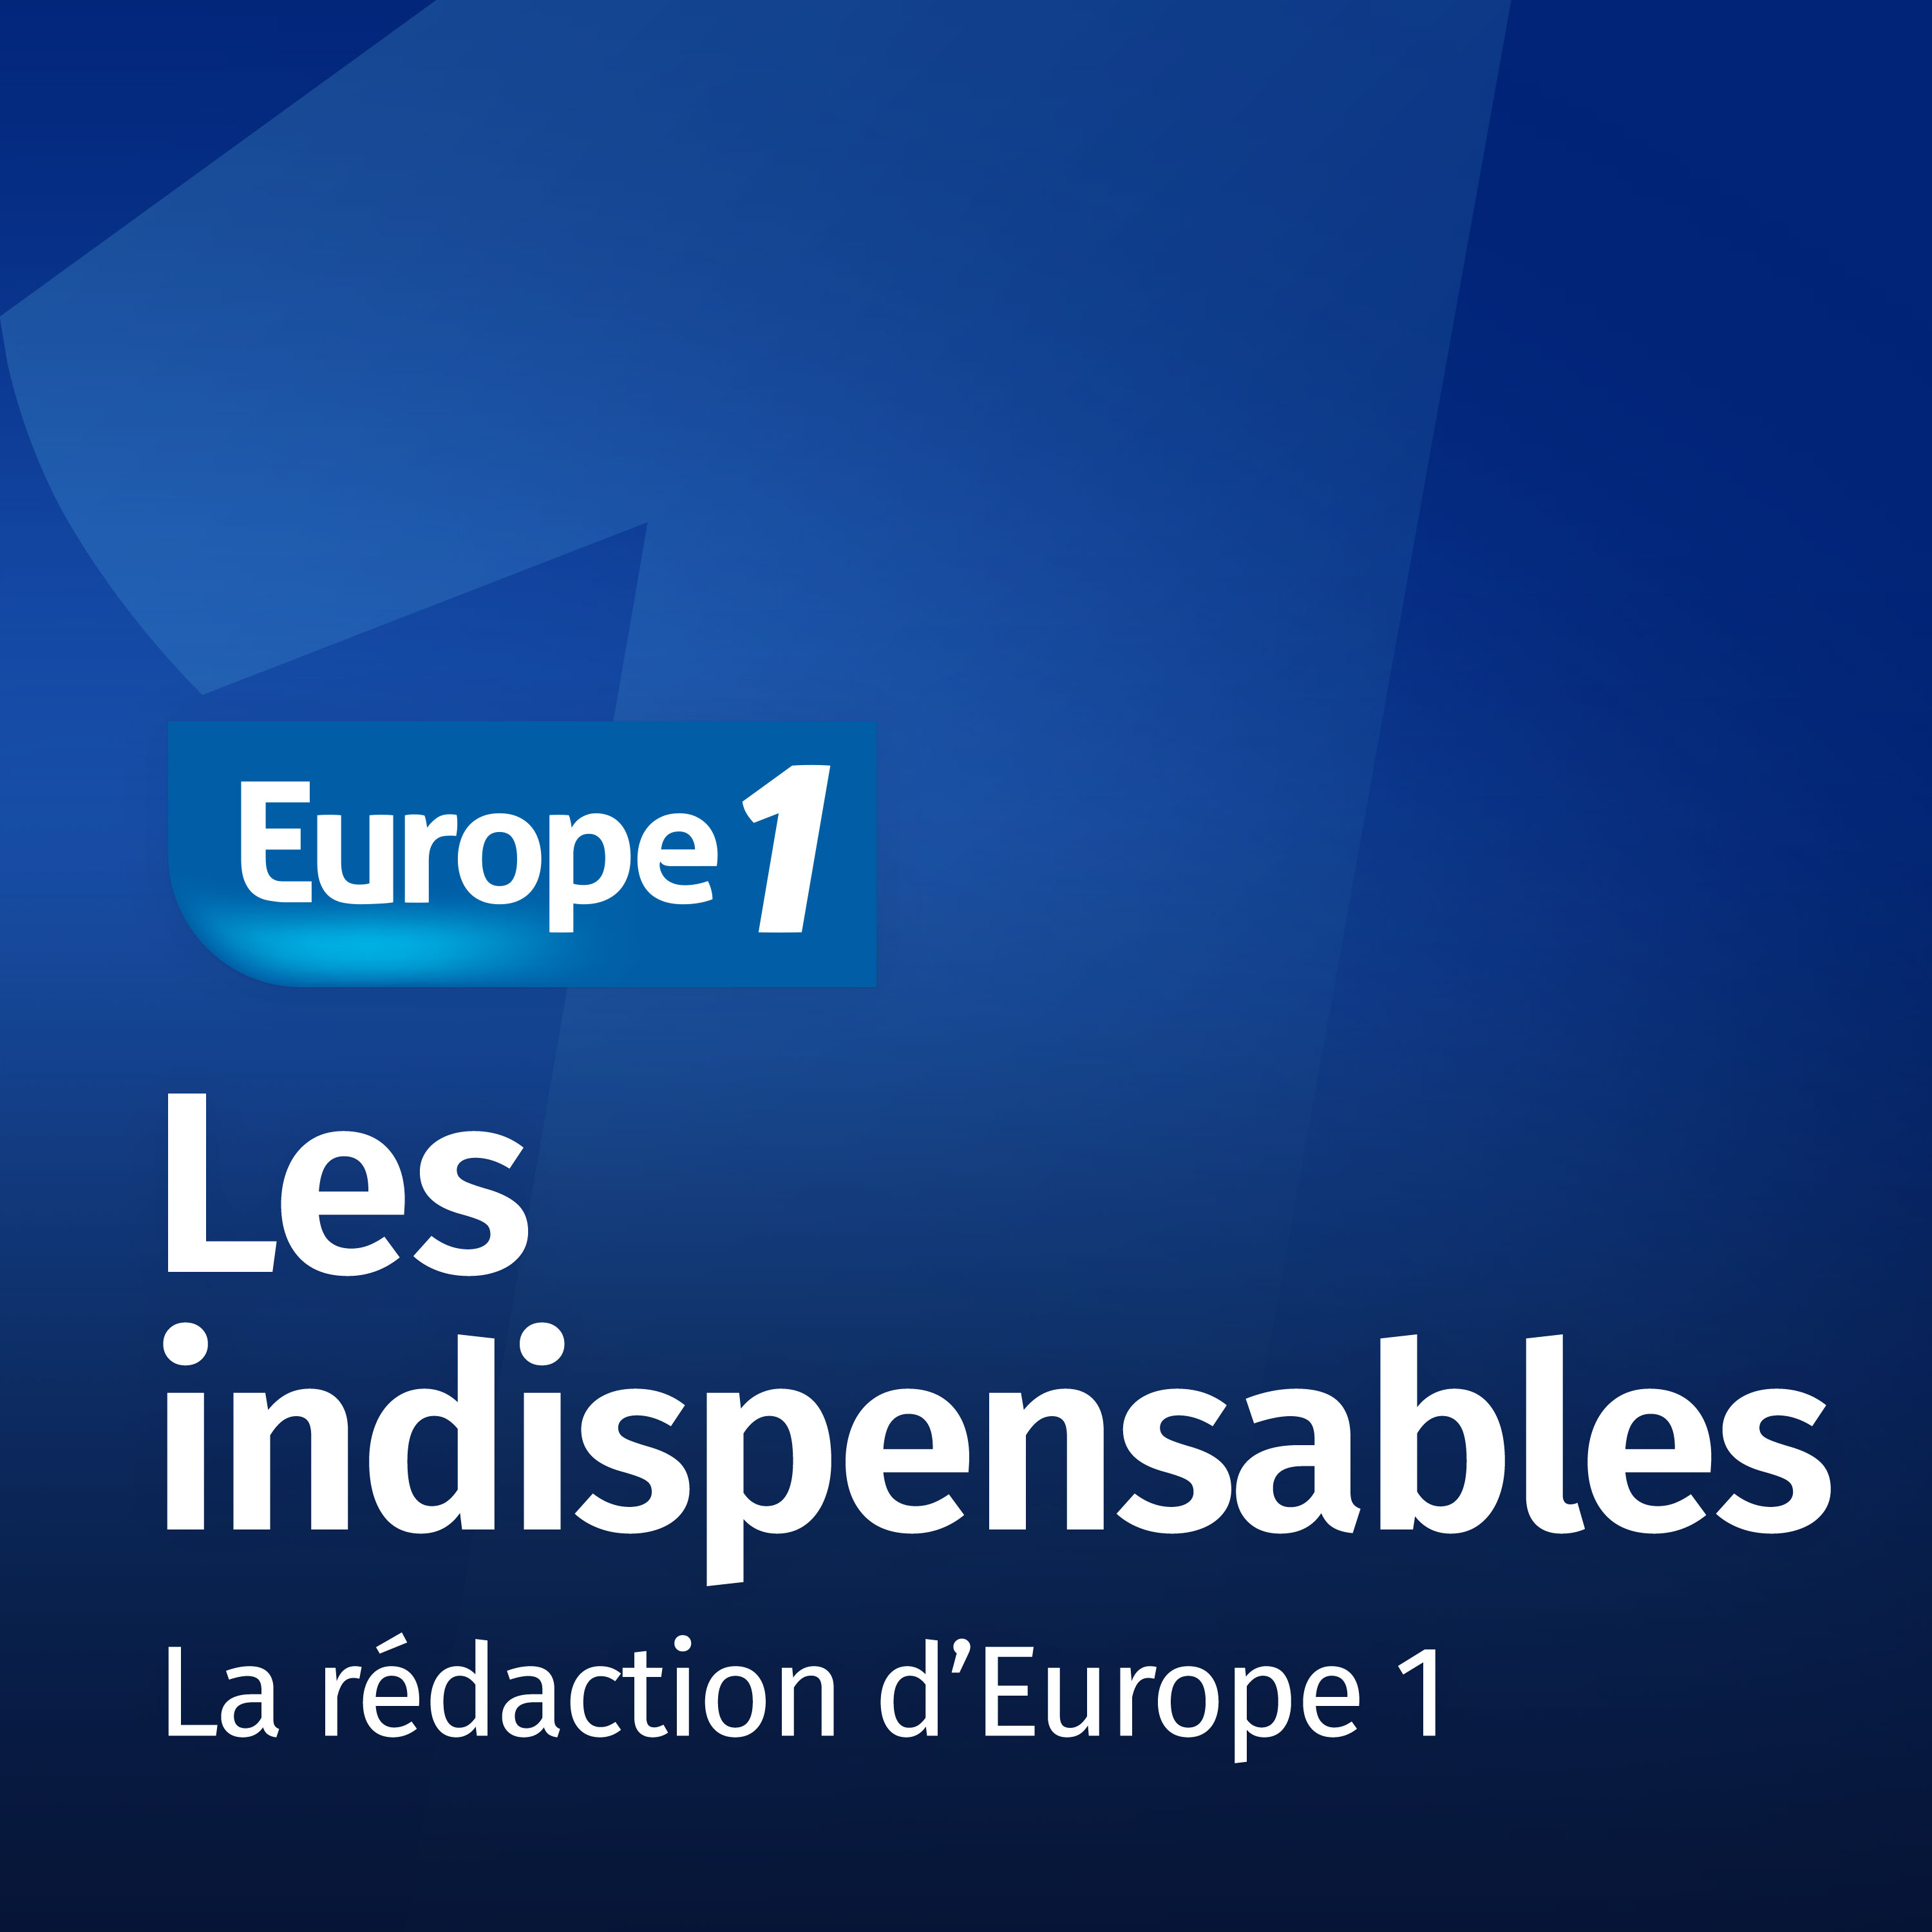 Image 1: Les indispensables Europe 1